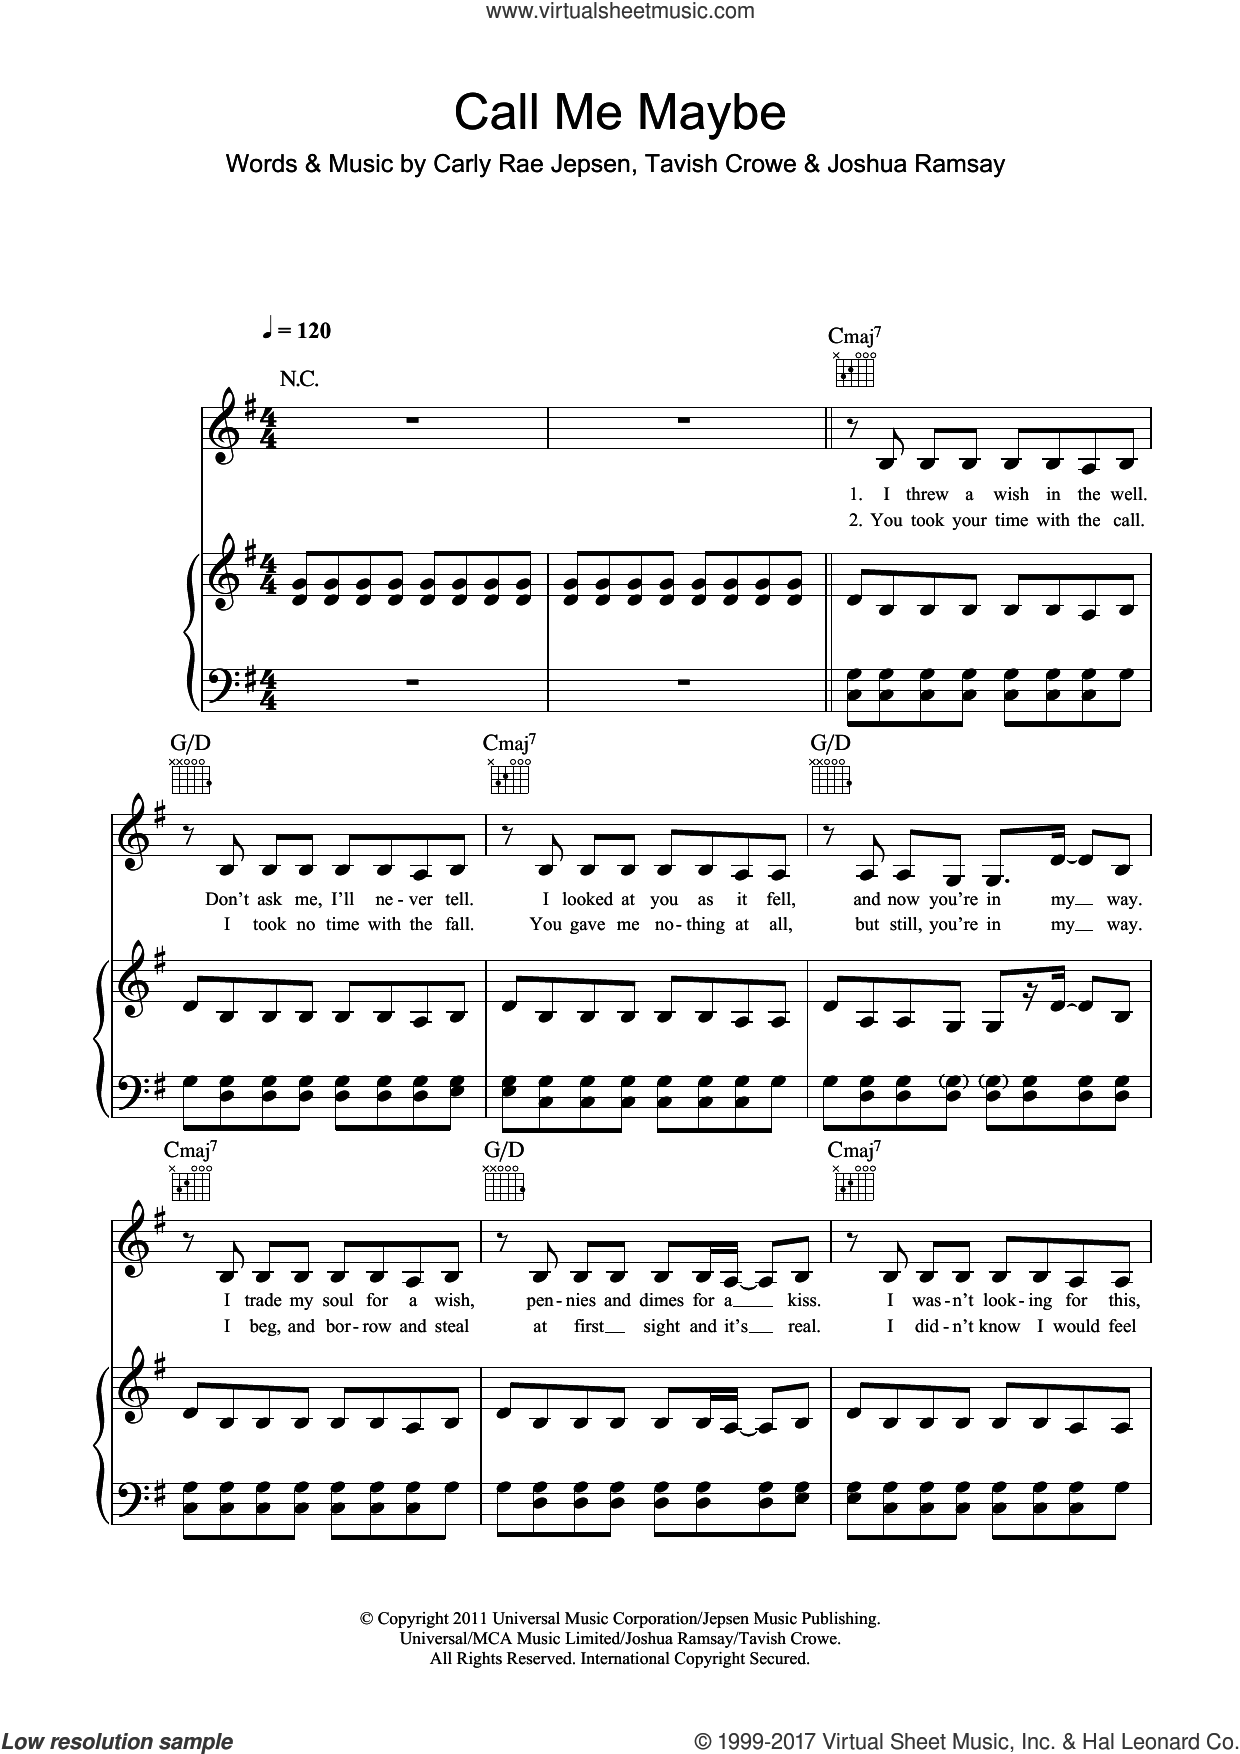 Call Me Maybe sheet music for voice, piano or guitar by Carly Rae Jepsen, Joshua Ramsay and Tavish Crowe, intermediate